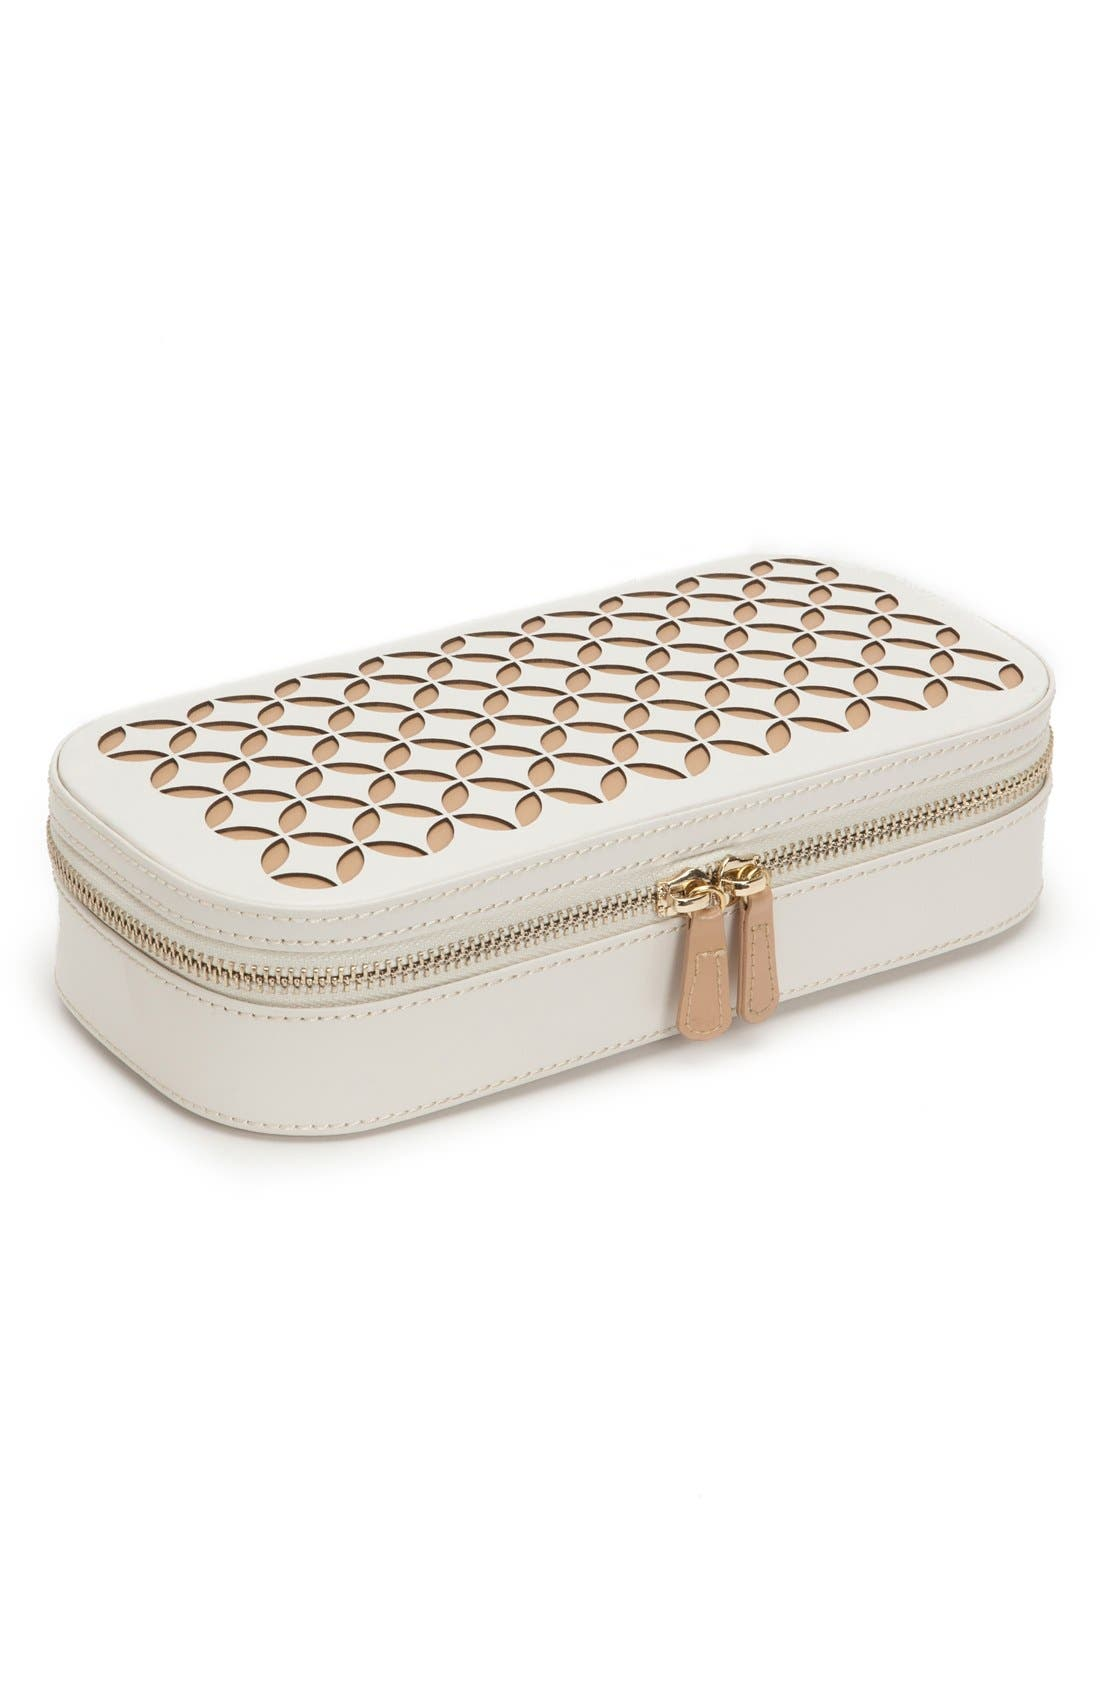 'Chloe' Zip Jewelry Case,                             Alternate thumbnail 2, color,                             Cream